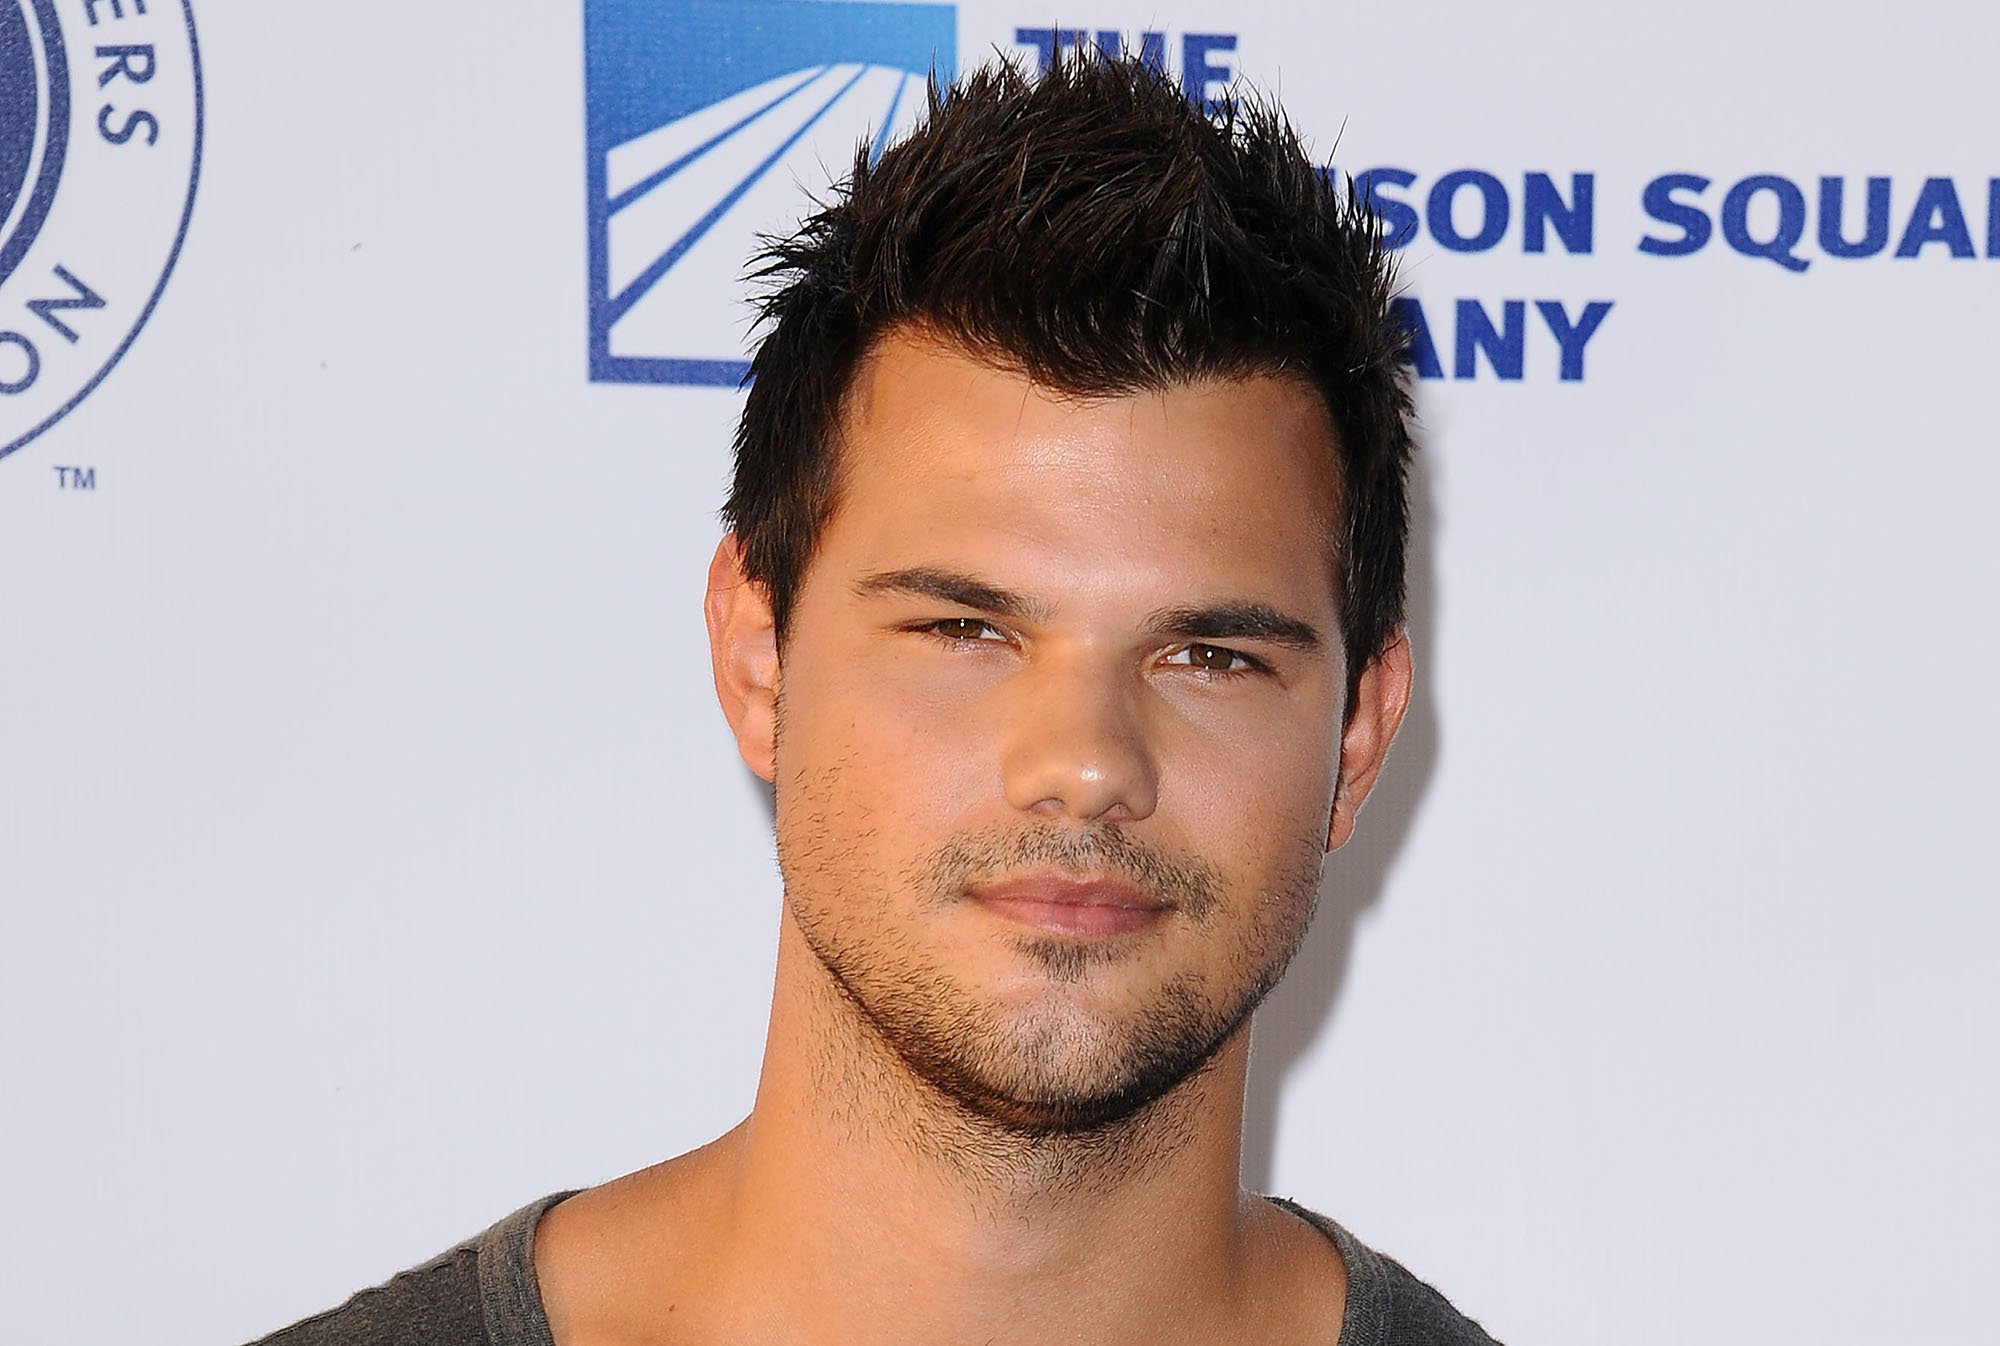 Taylor swift break up with taylor lautner